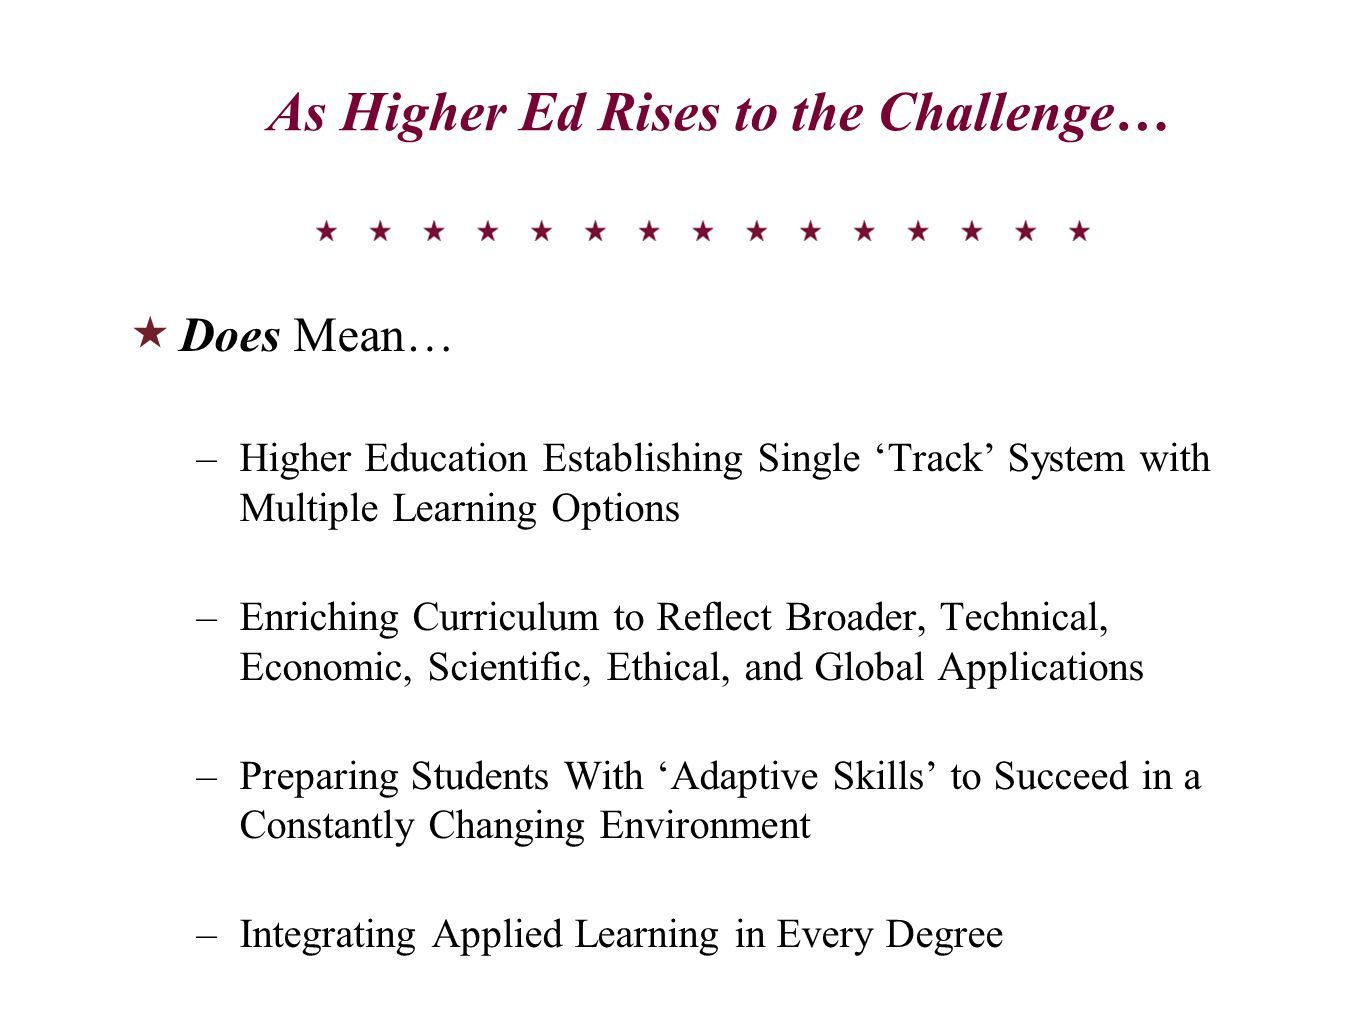 As Higher Ed Rises to the Challenge…  Does Mean… –Higher Education Establishing Single 'Track' System with Multiple Learning Options –Enriching Curriculum to Reflect Broader, Technical, Economic, Scientific, Ethical, and Global Applications –Preparing Students With 'Adaptive Skills' to Succeed in a Constantly Changing Environment –Integrating Applied Learning in Every Degree